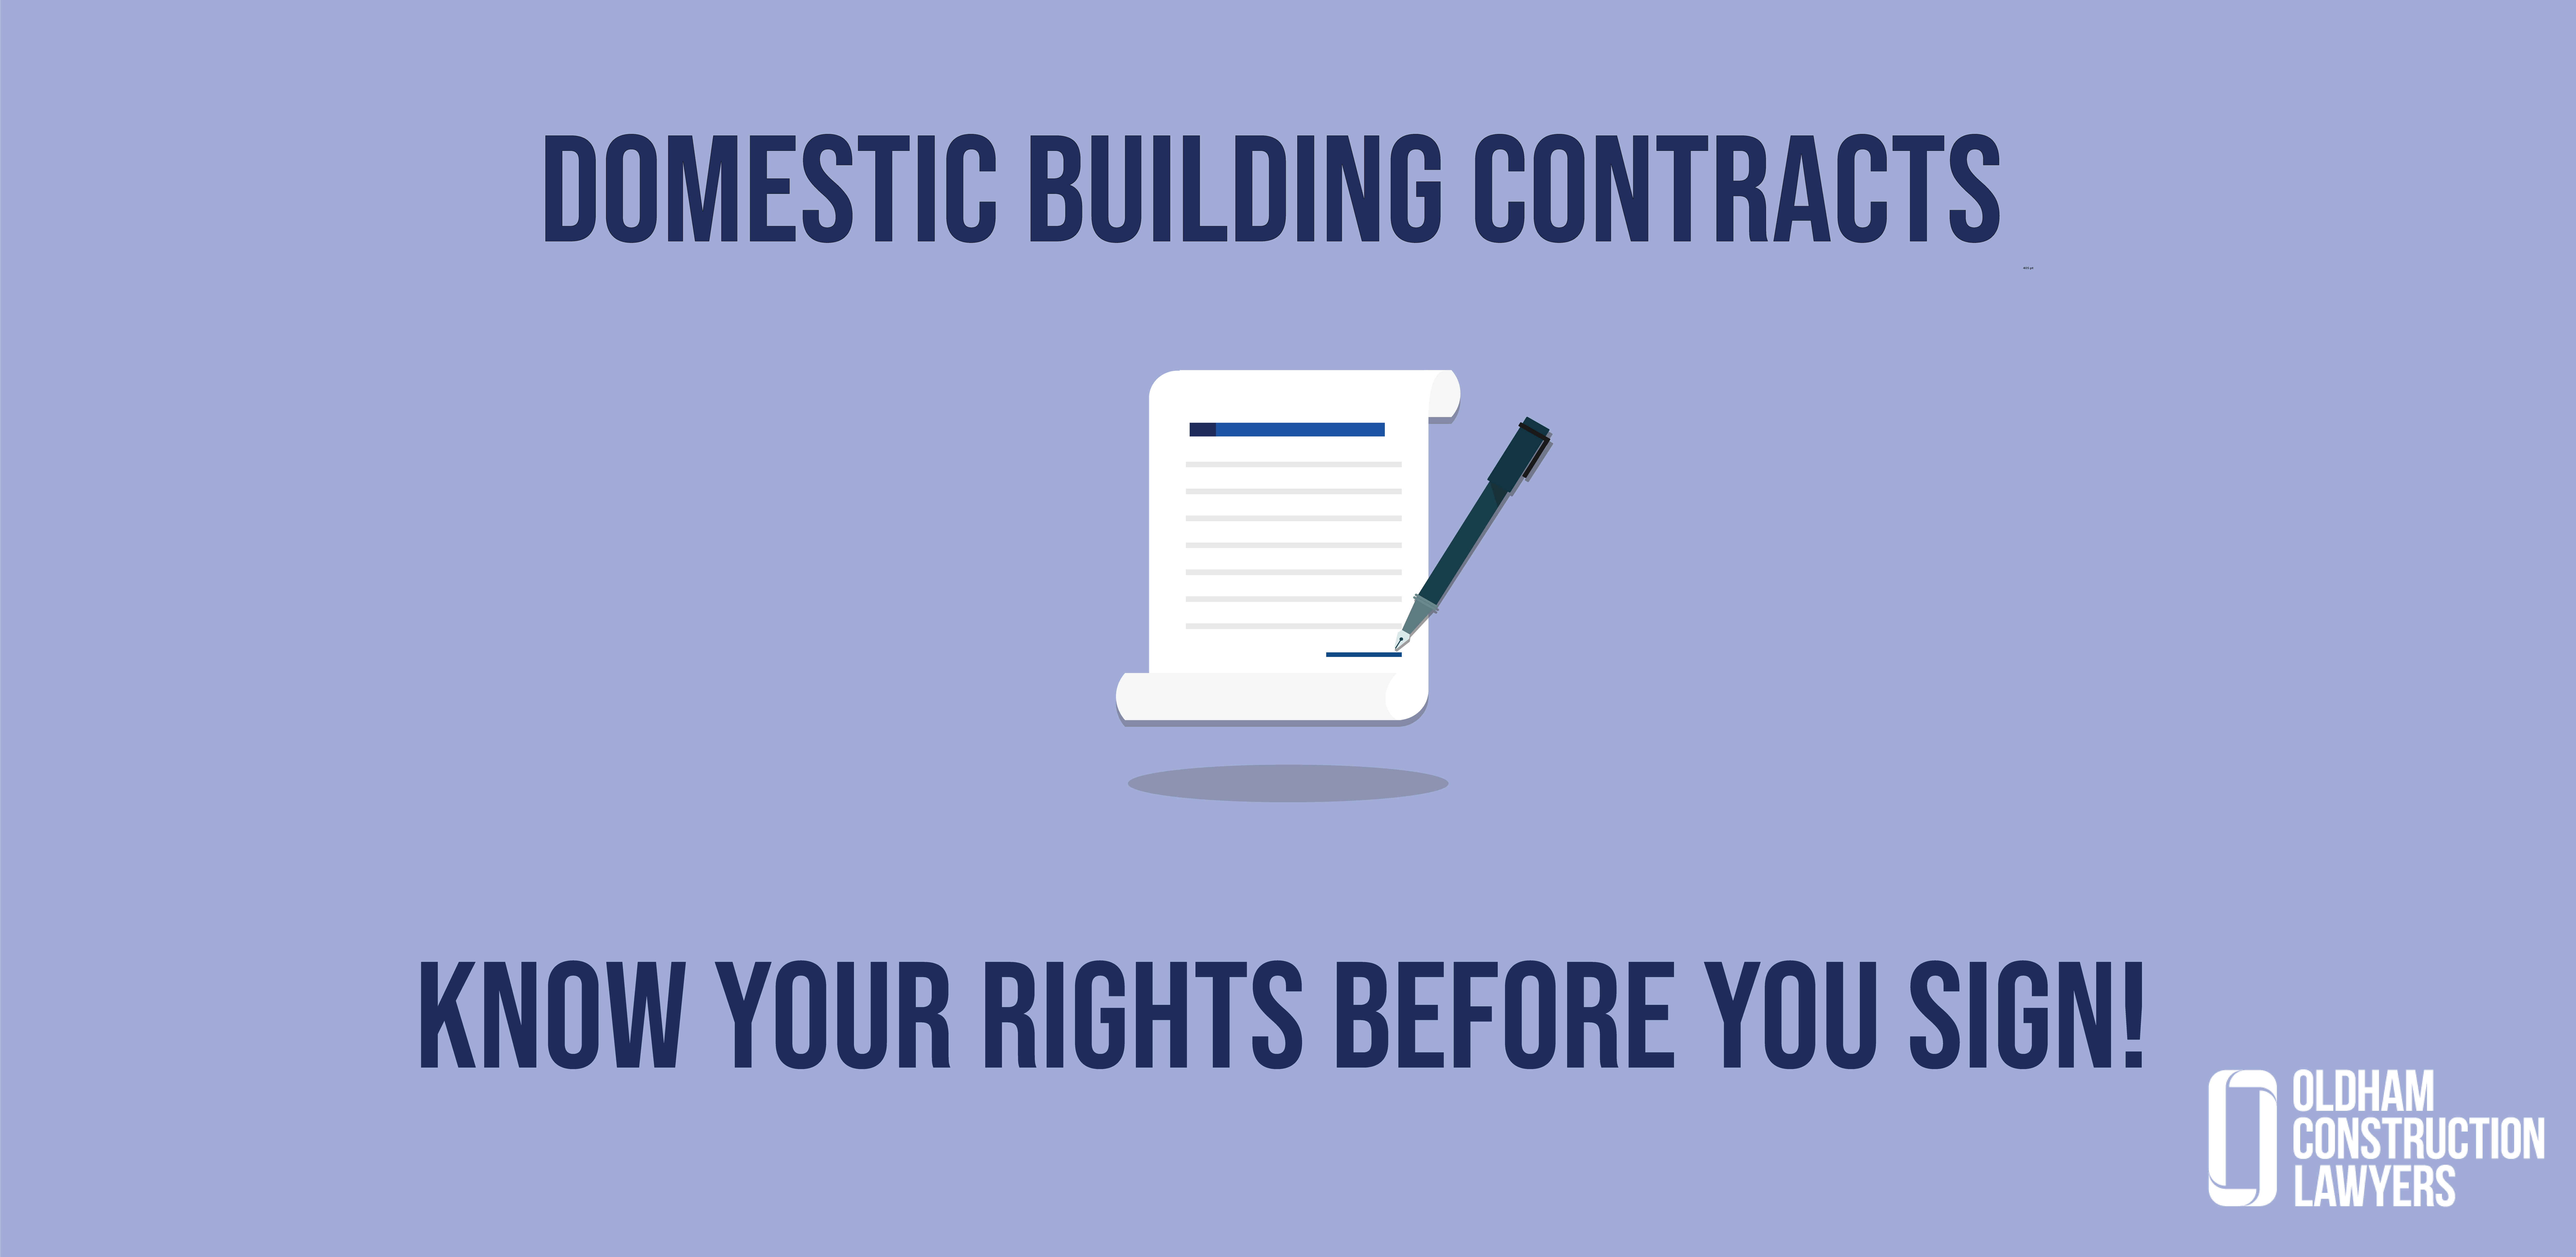 Domestic Building Contracts – Know your rights before you sign!